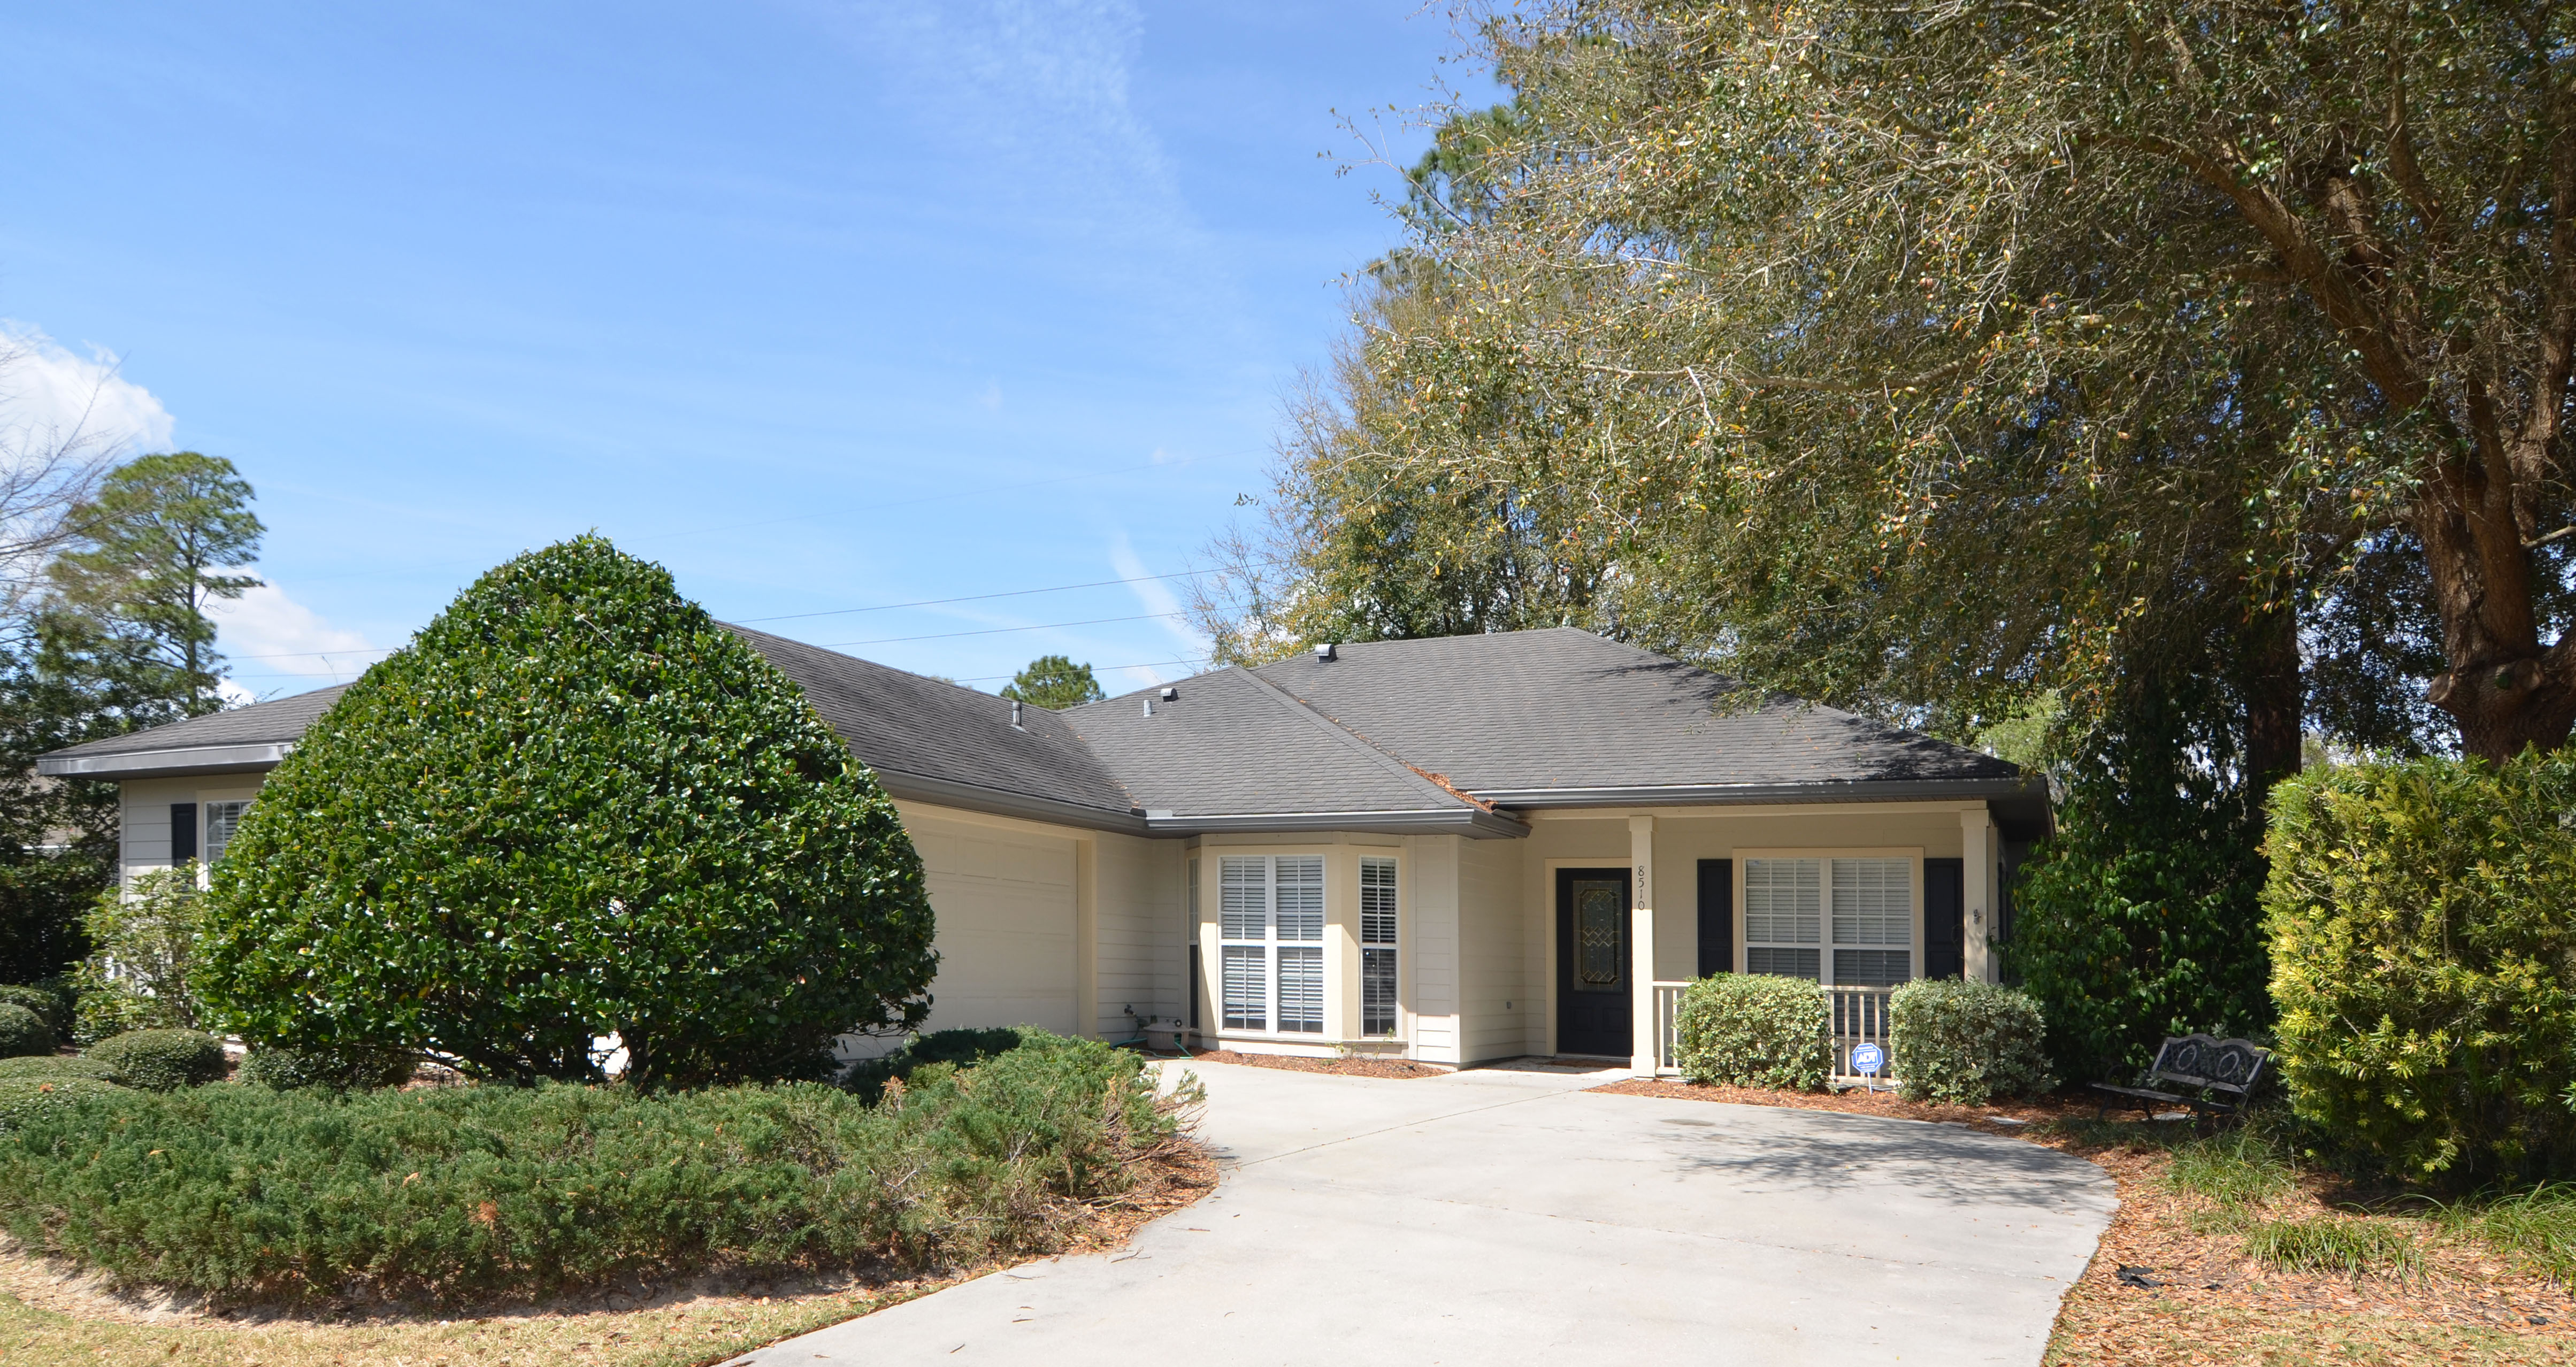 Sold: Mentone Home at 8510 SW 66th Lane Gainesville FL 32608